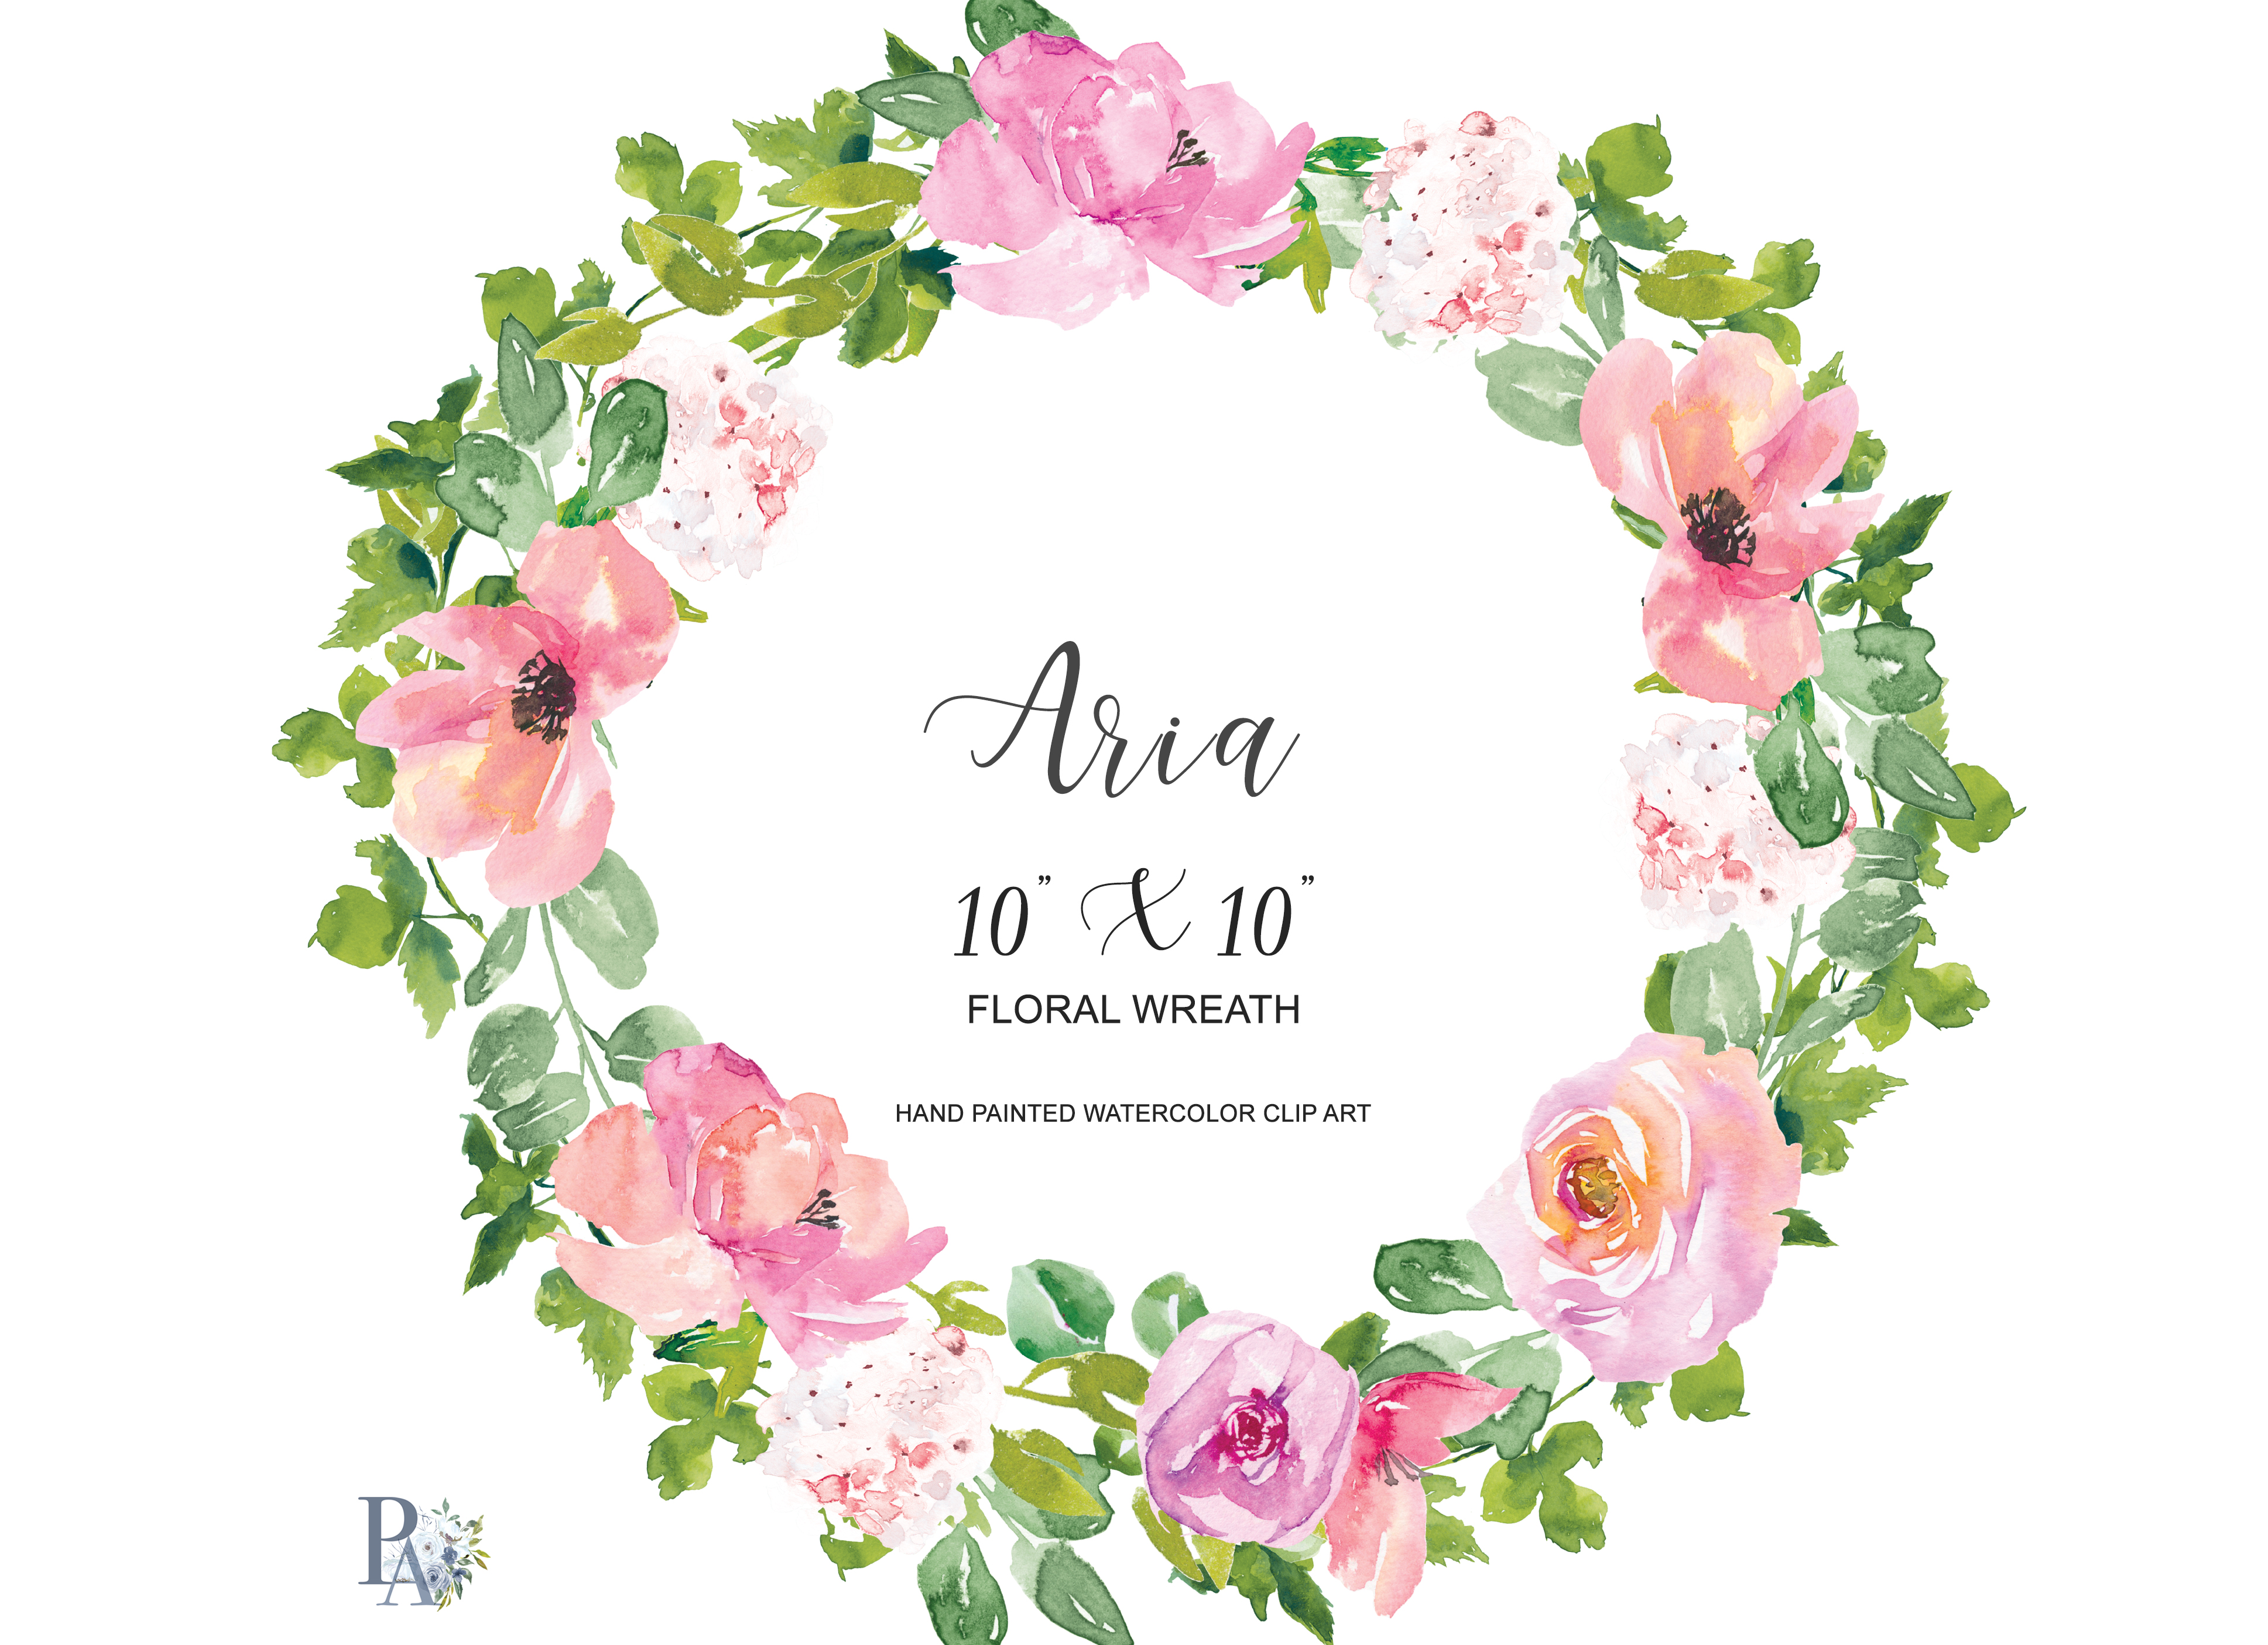 Wreath pictures clipart image royalty free stock Watercolor Blush Floral Wreath Clipart image royalty free stock